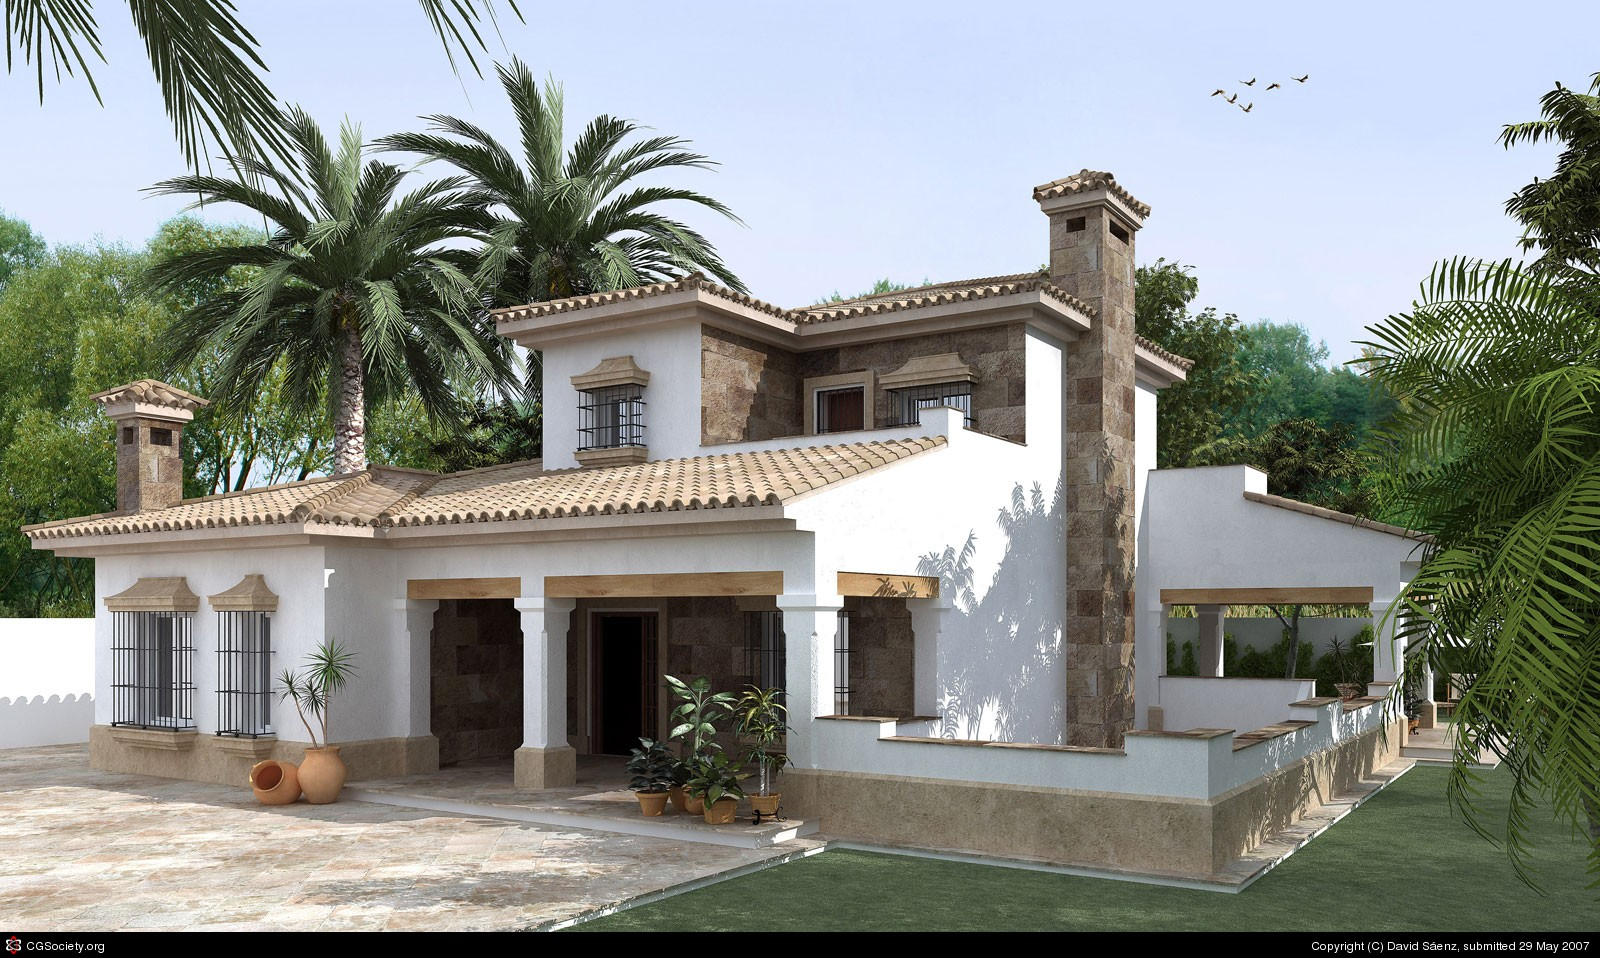 Meryem uzerli villa exterior design ideas for Villas exterior design pictures